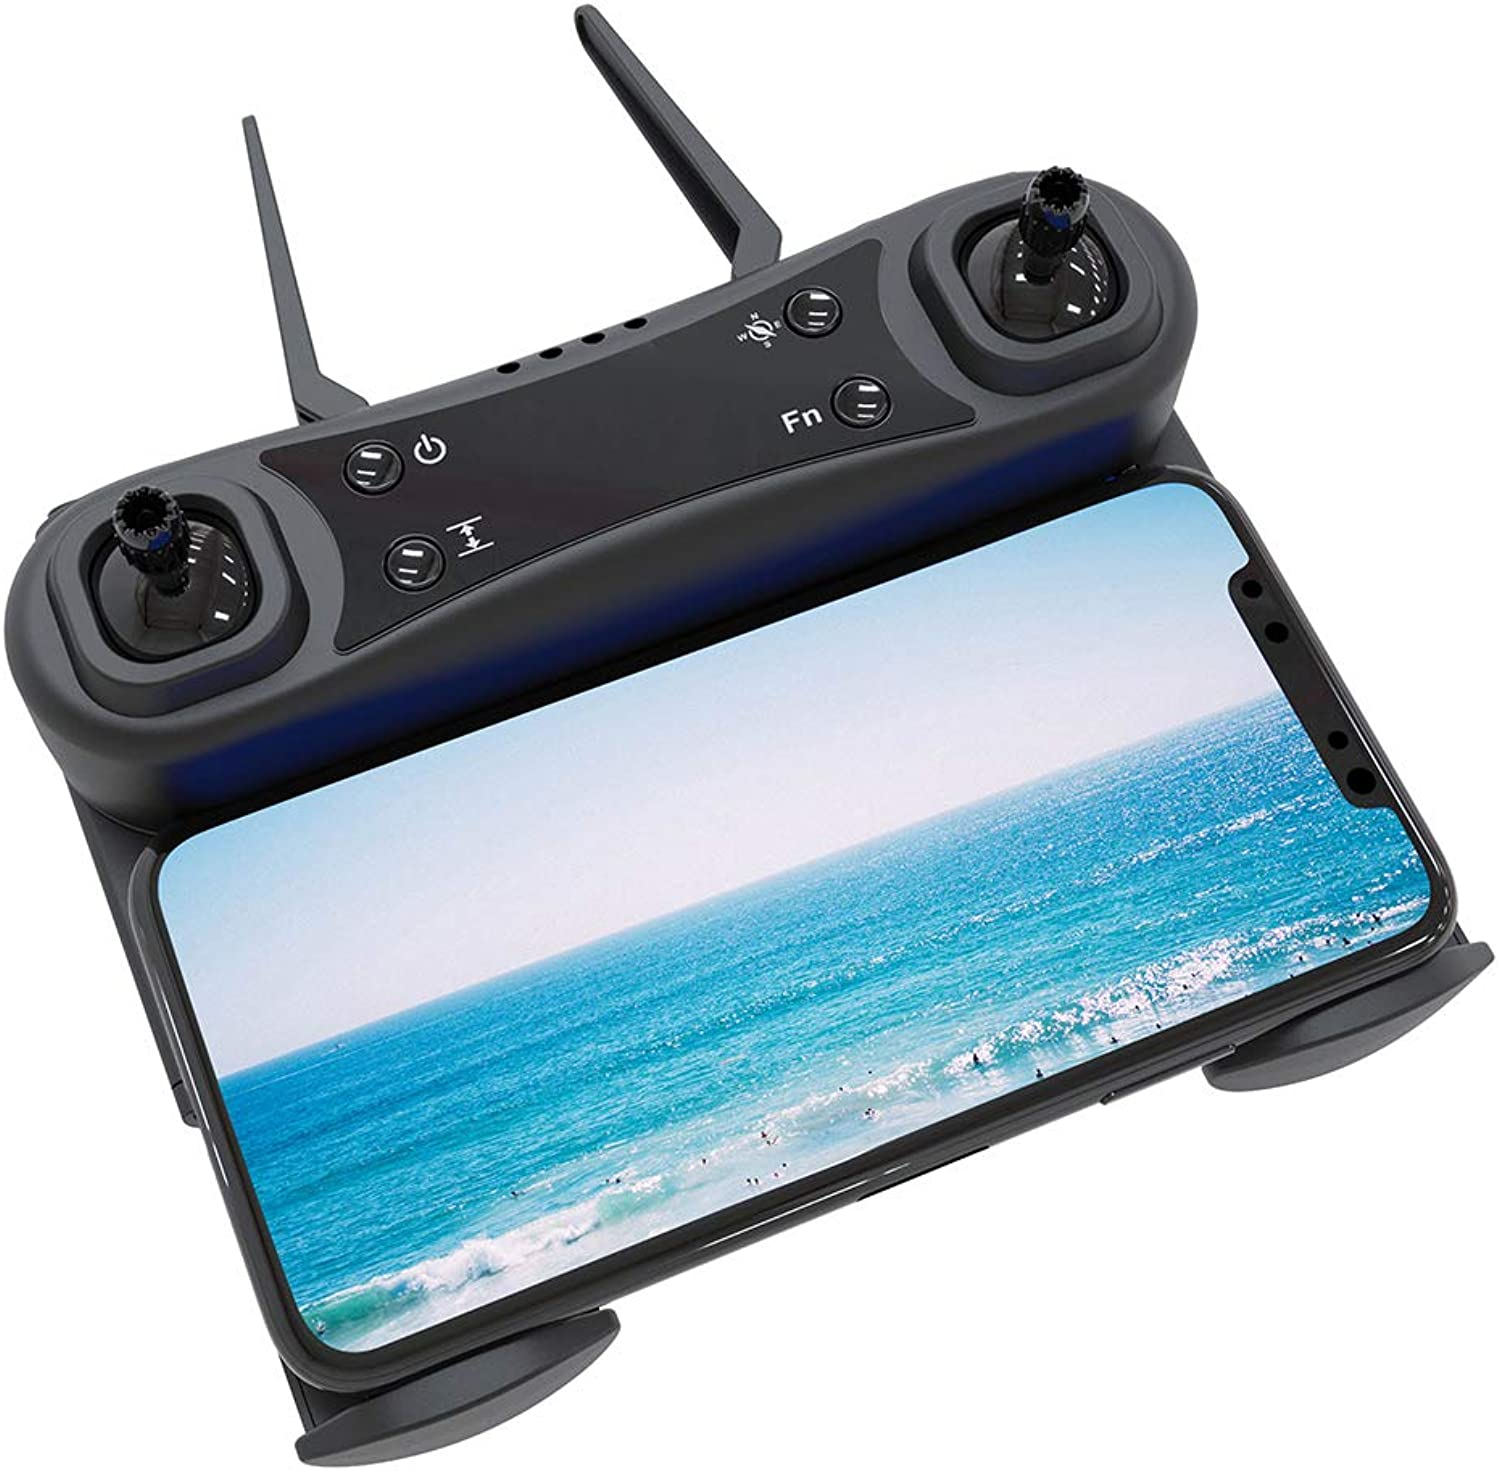 Ganquer Foldable Camera Altitude Hold Gift Kids Quadcopter Toy Remote Control FourAxis(4K)